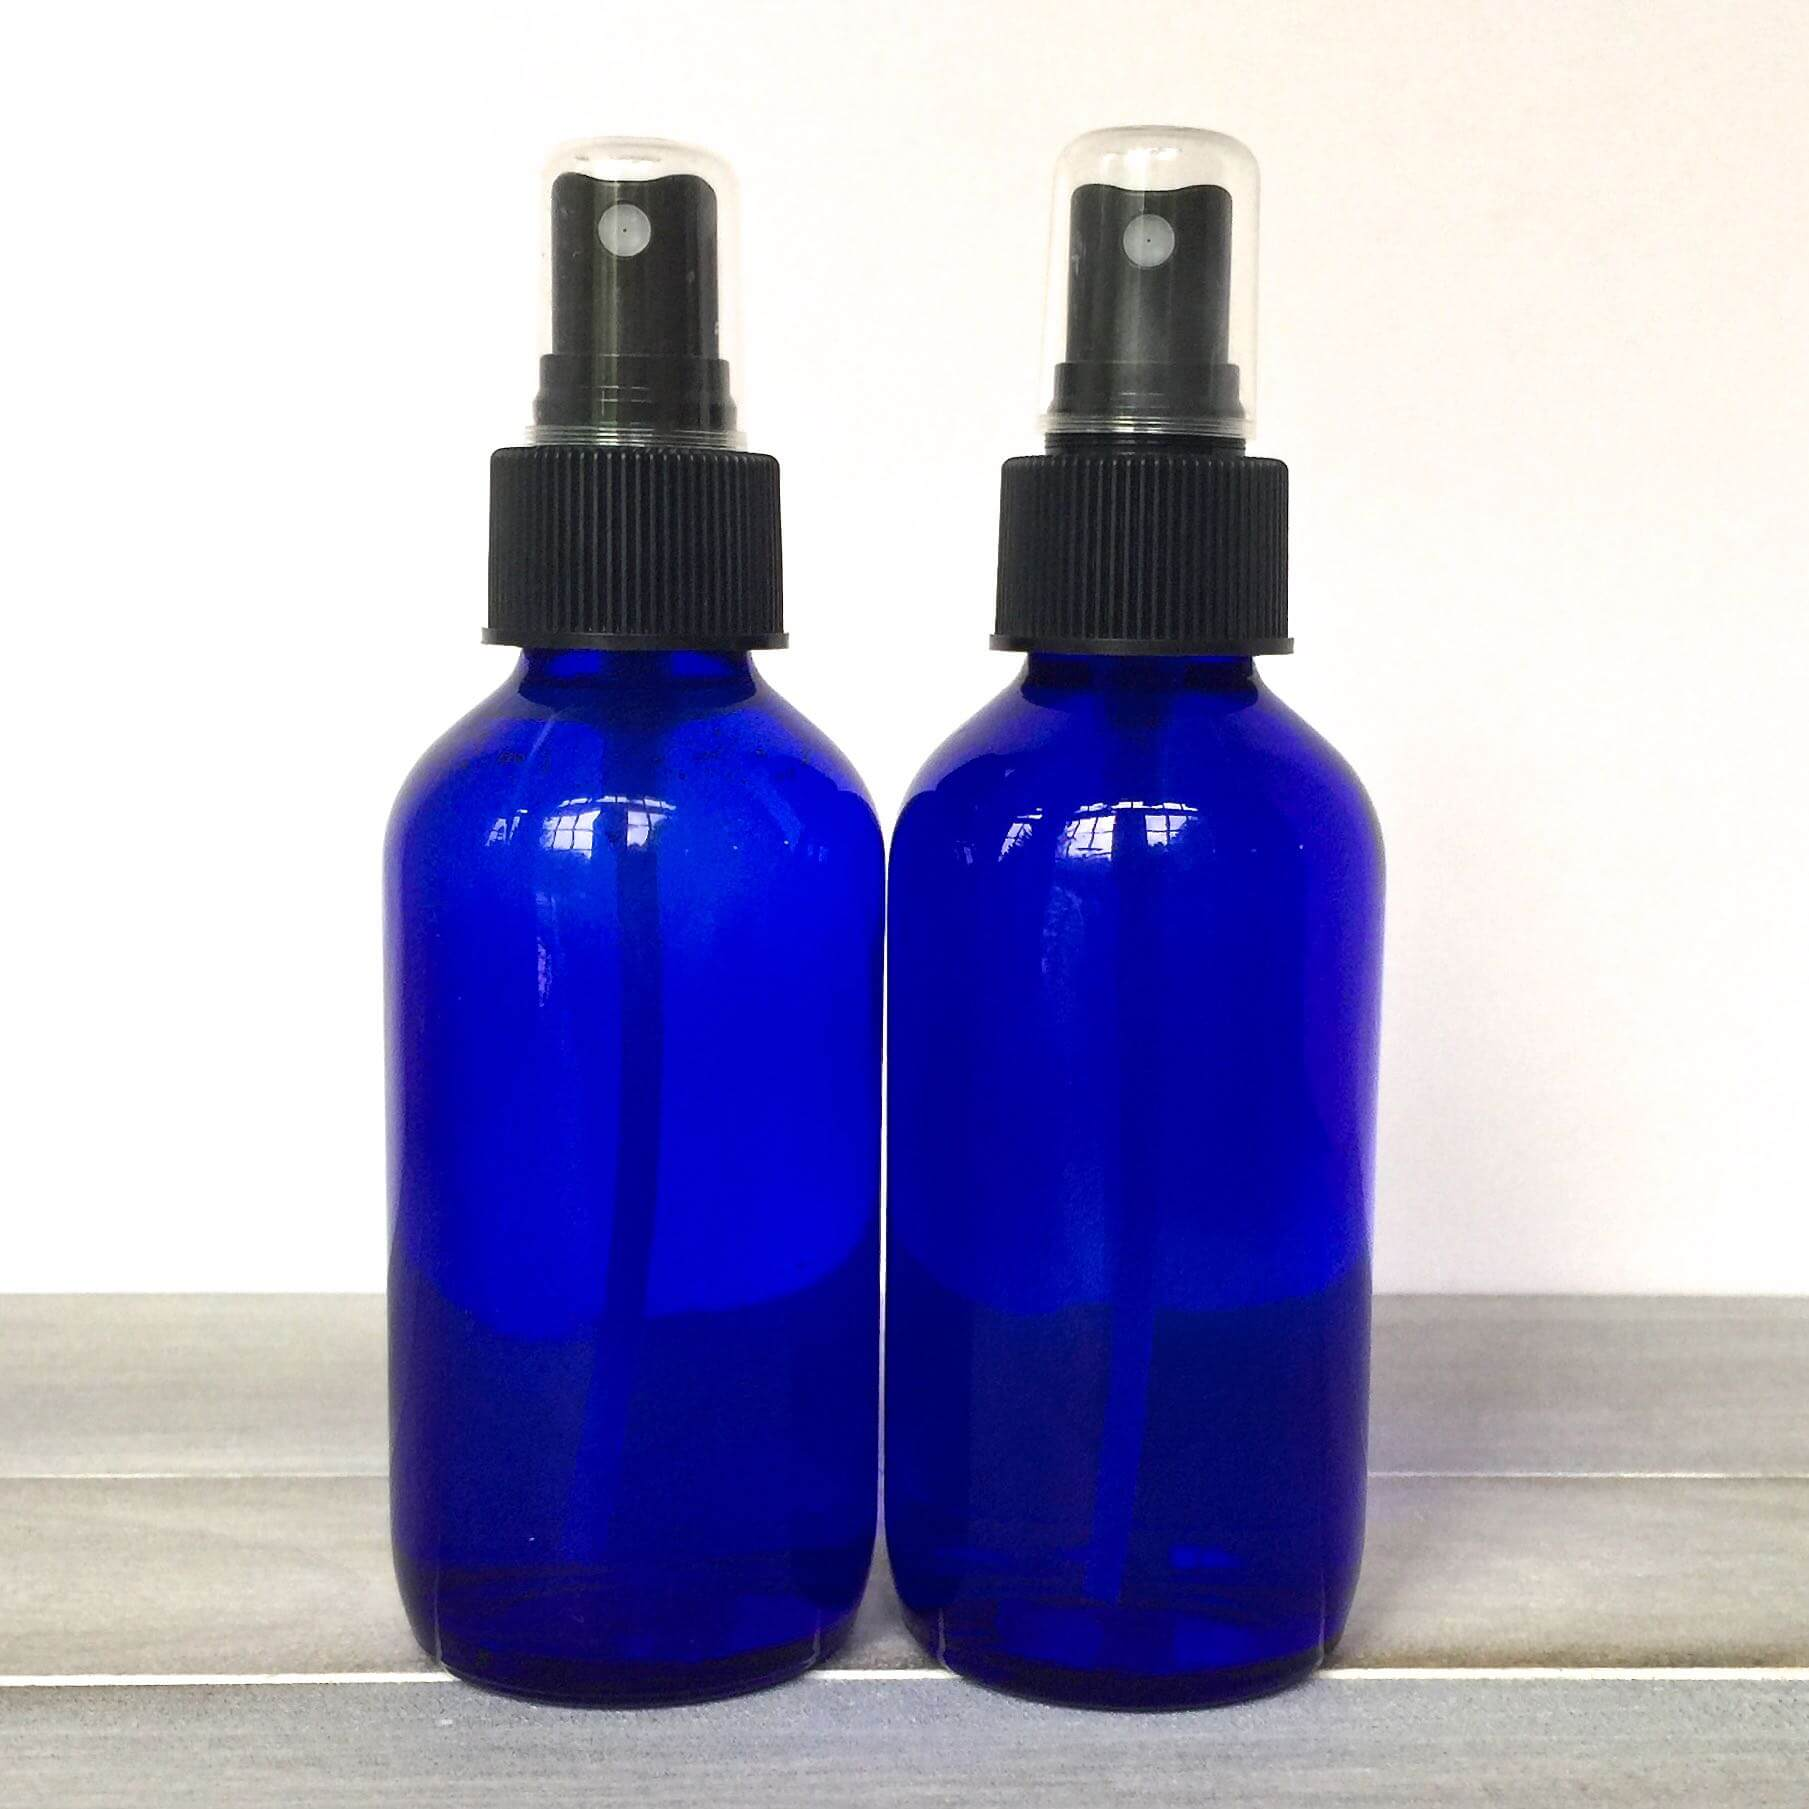 DIY Cool and Refresh Spray - 10% Discount for 4 Ounce Blue Spray Bottles